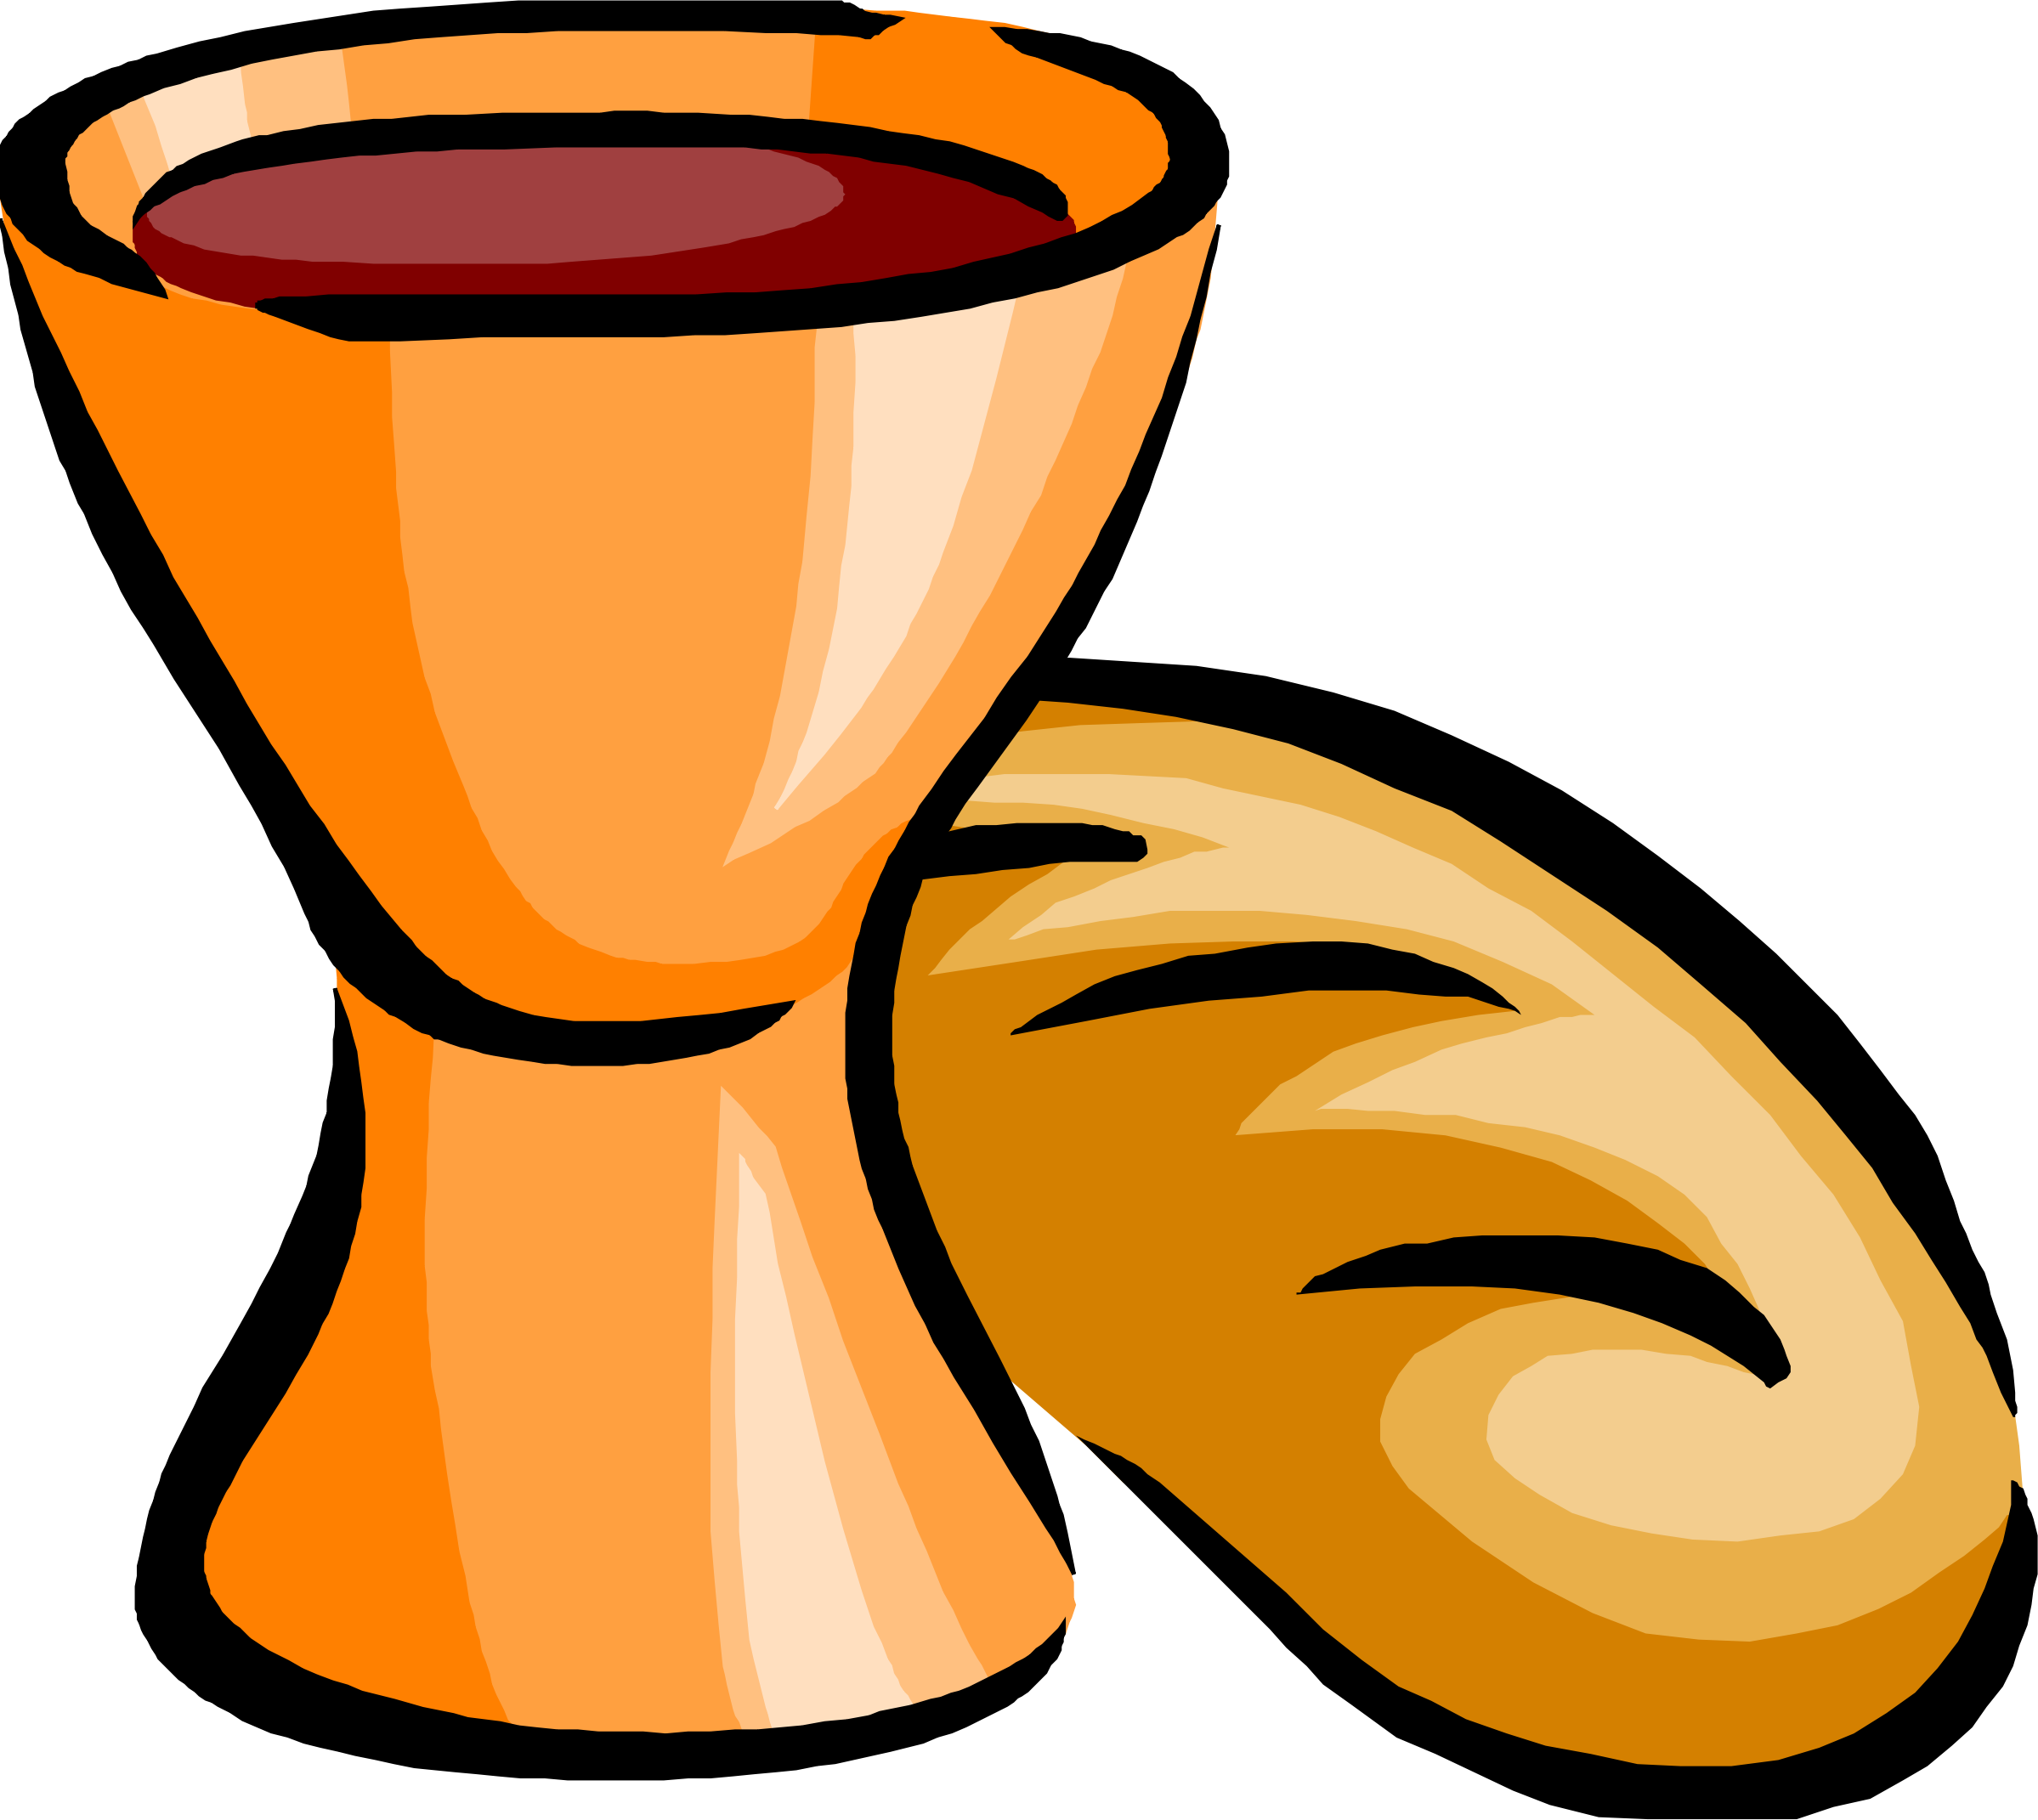 Circle clipart bread. And wine icons png